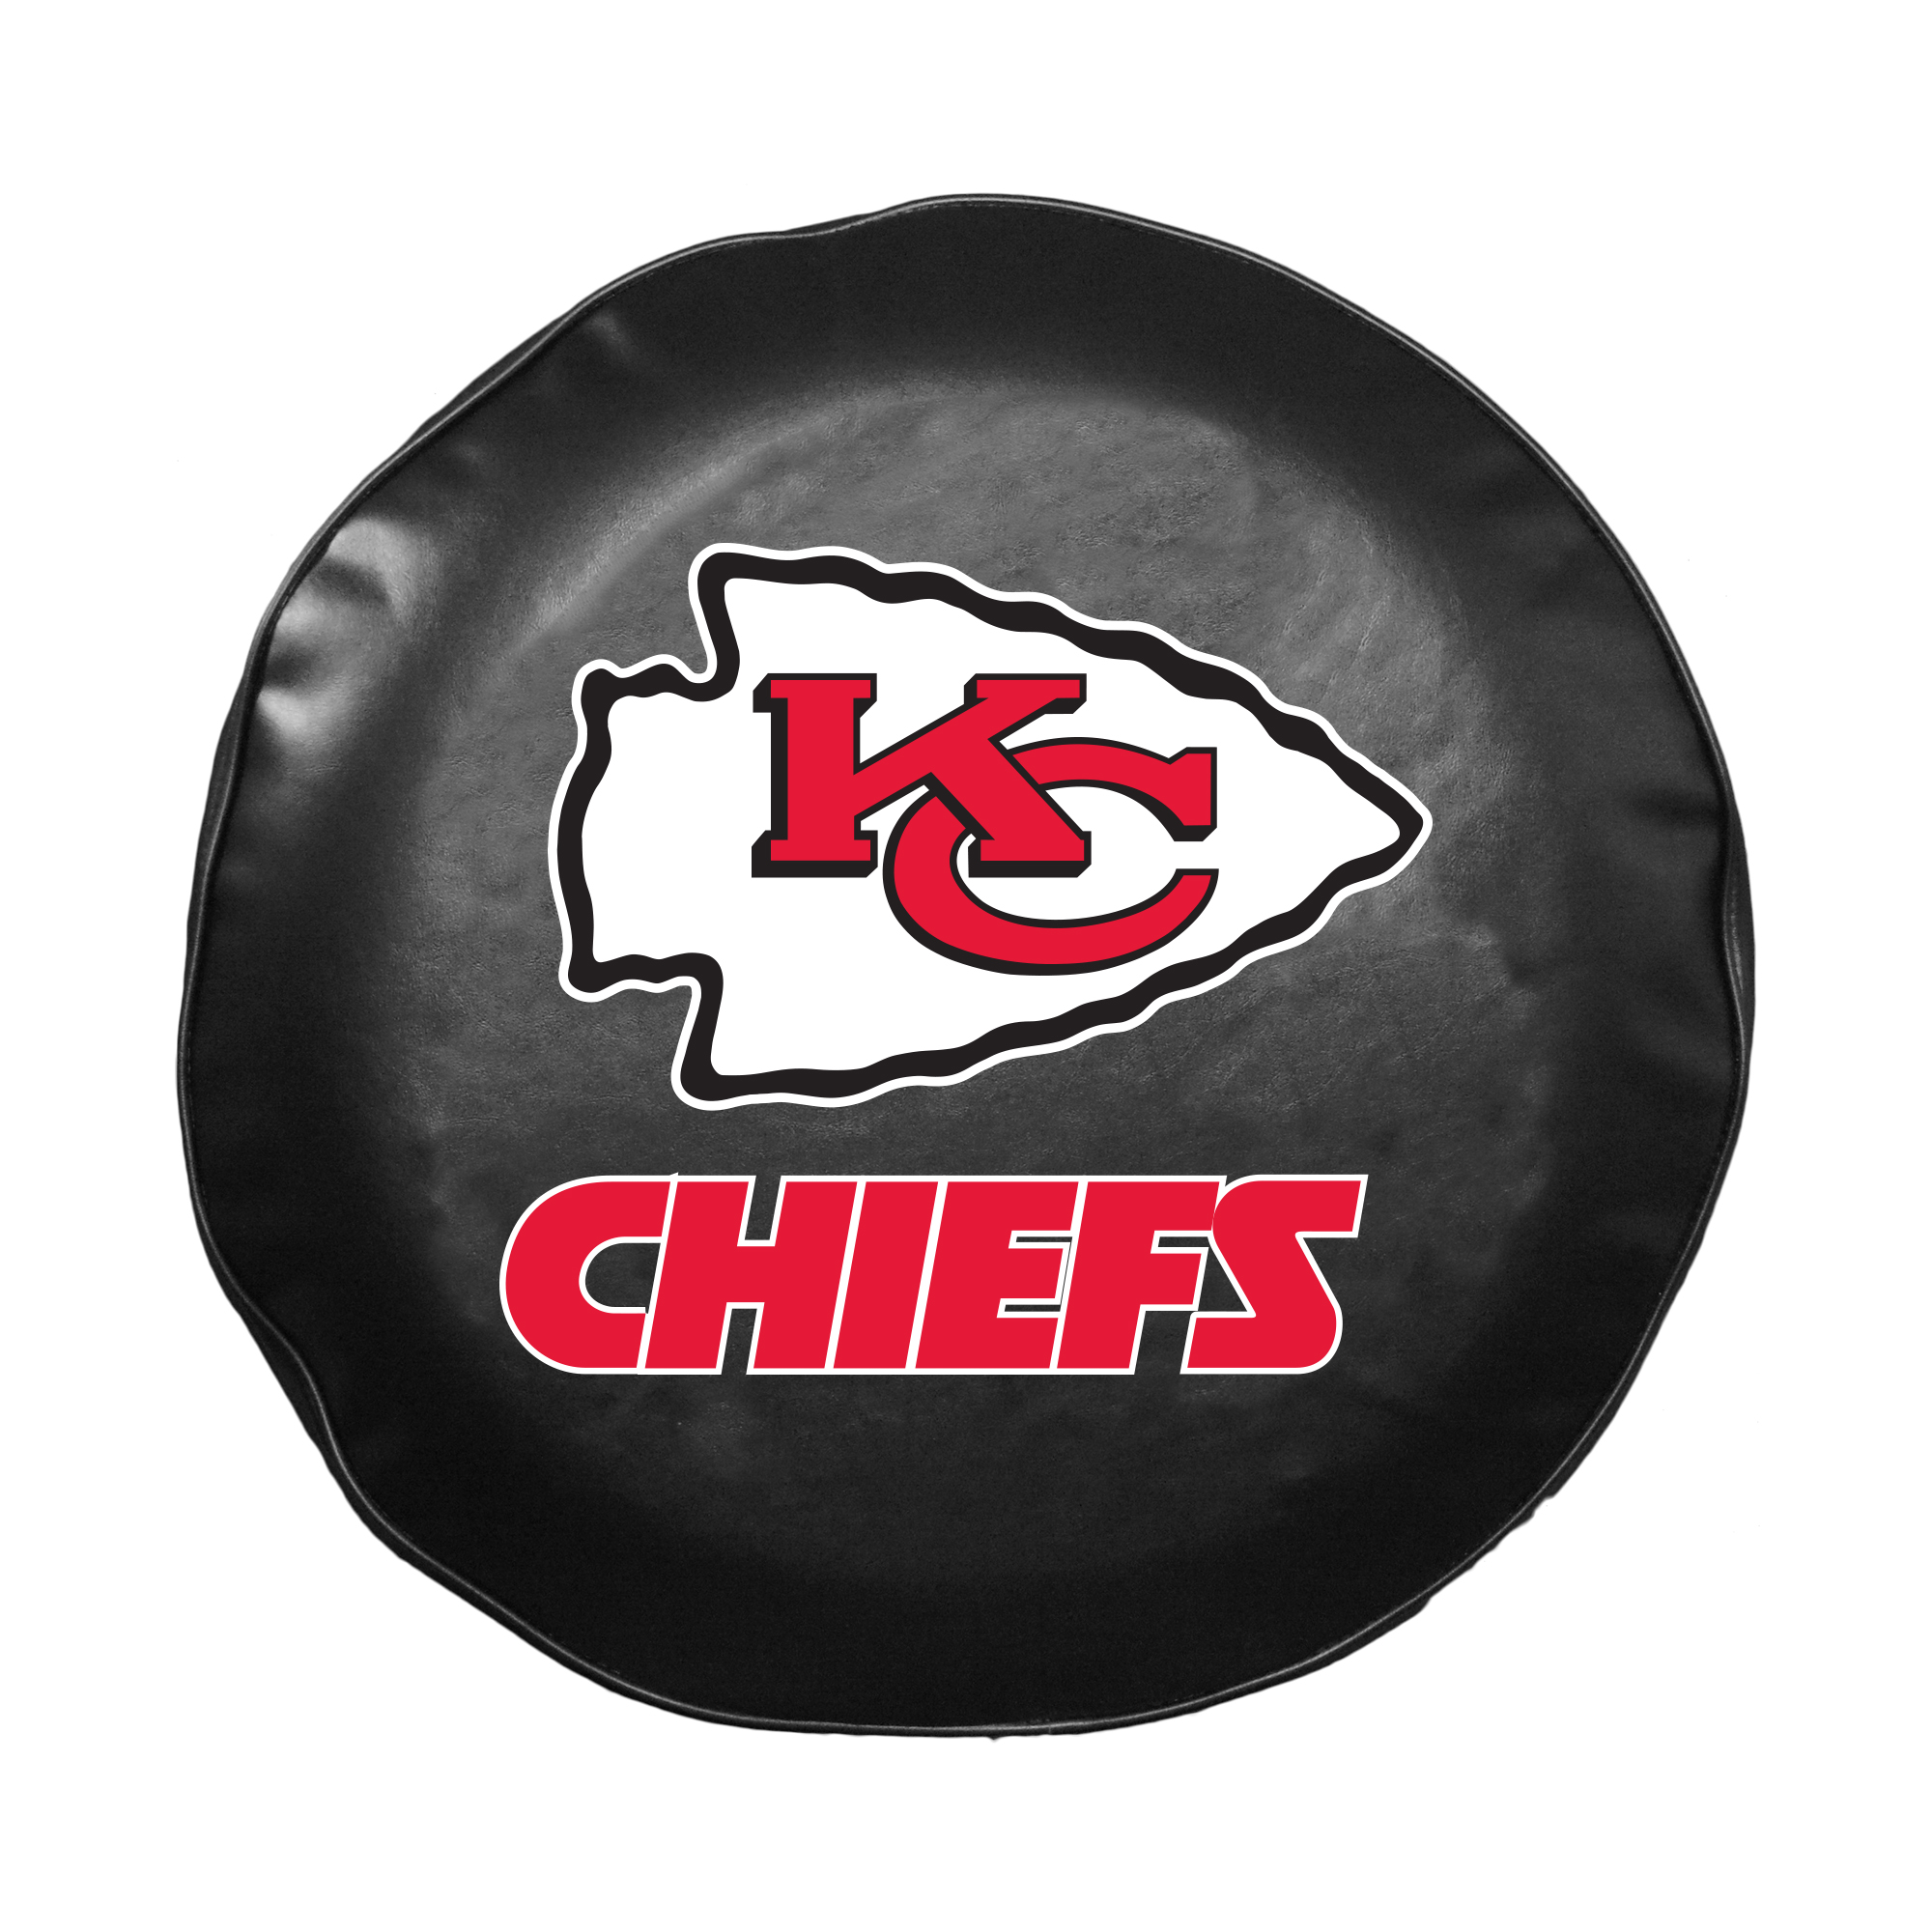 CHIEFS Std Tire Cover